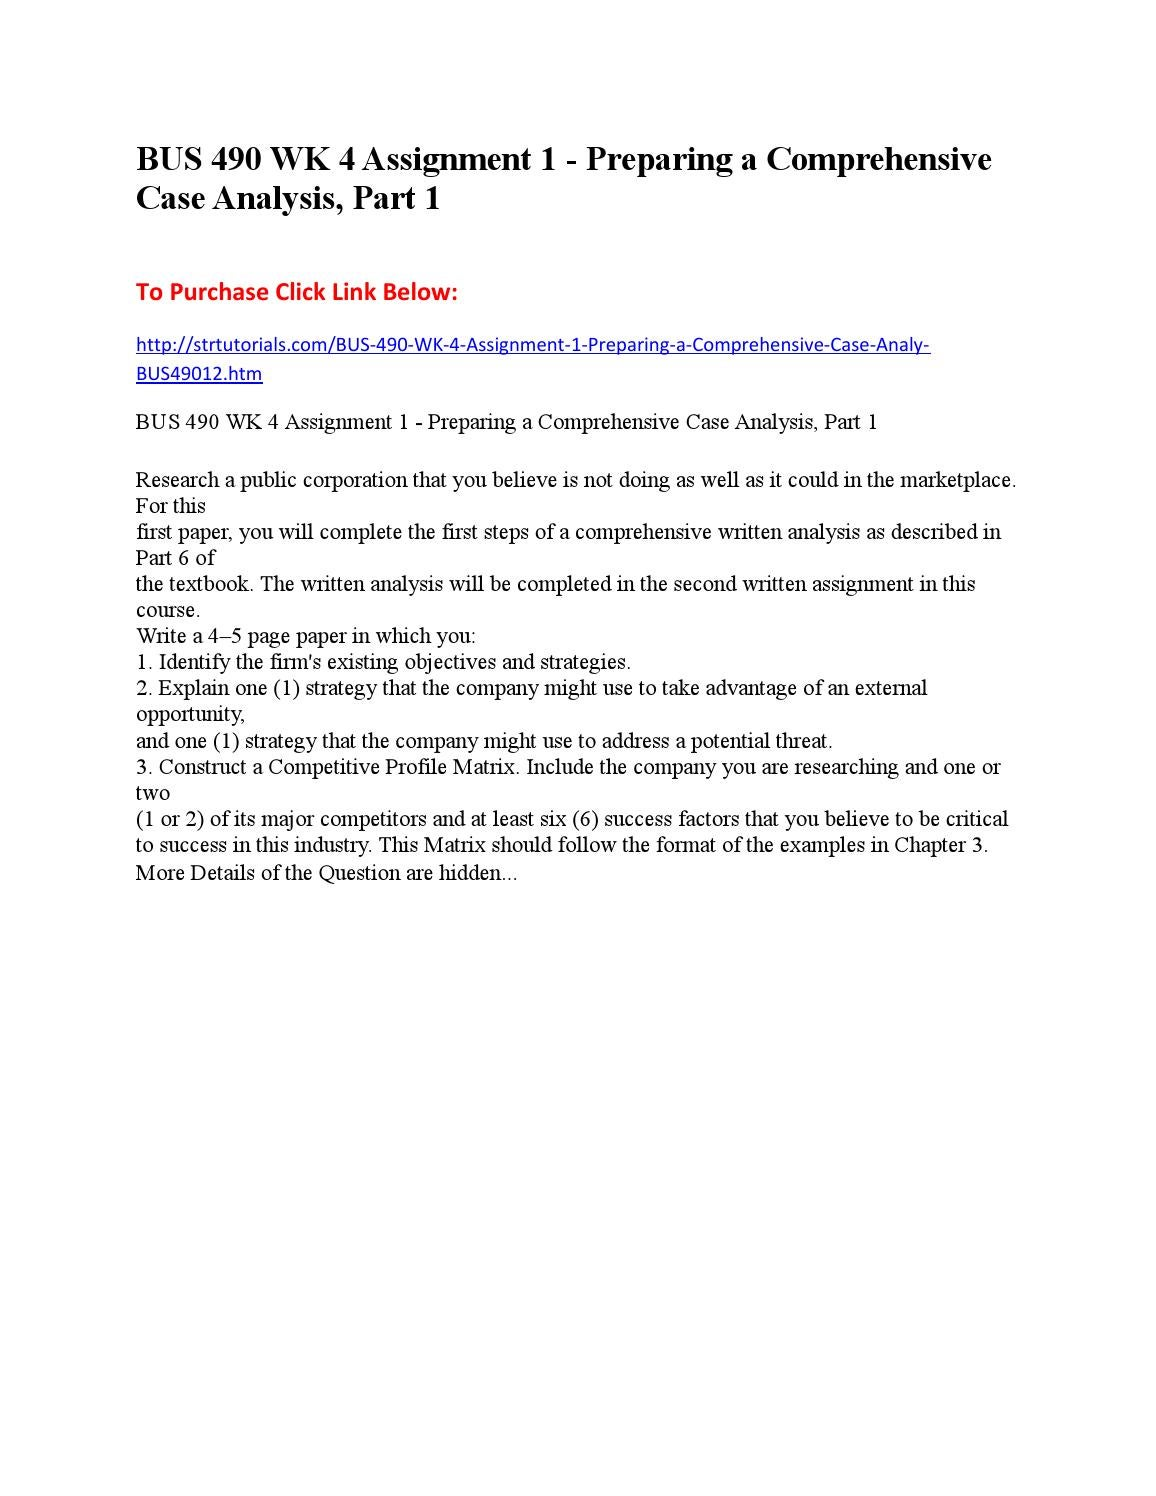 assignment 1 preparing a comprehensive case analysis Steps in preparing a comprehensive written analysis in preparing a written case analysis, you could follow the steps outlined here, which correlate to the stages in the strategic-management process and the chapters in the textbook.